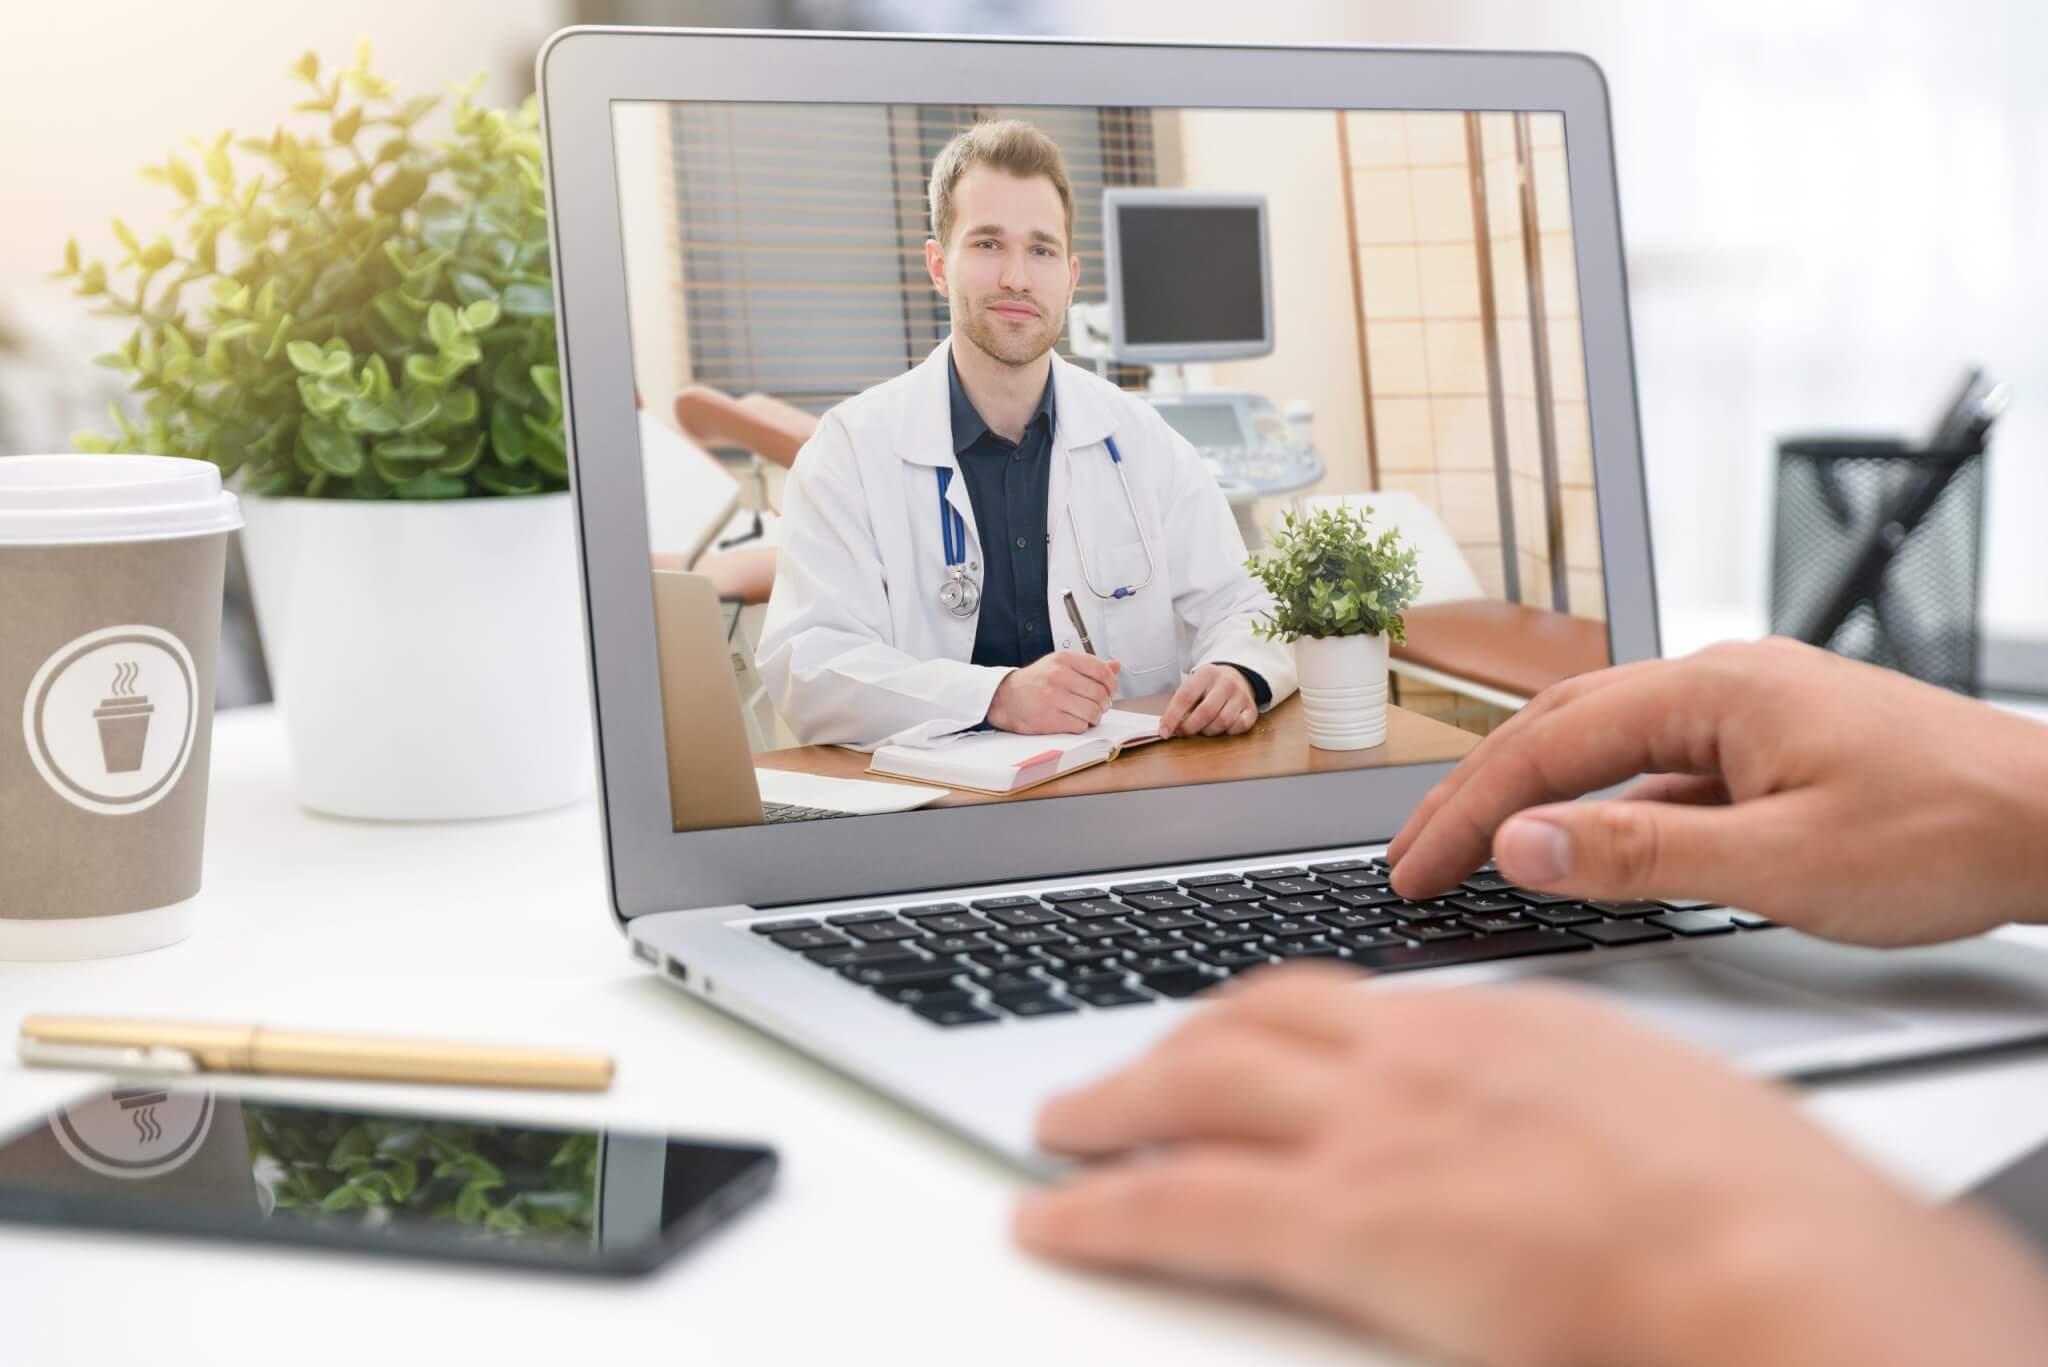 The rise of telemedicine due to coronavirus